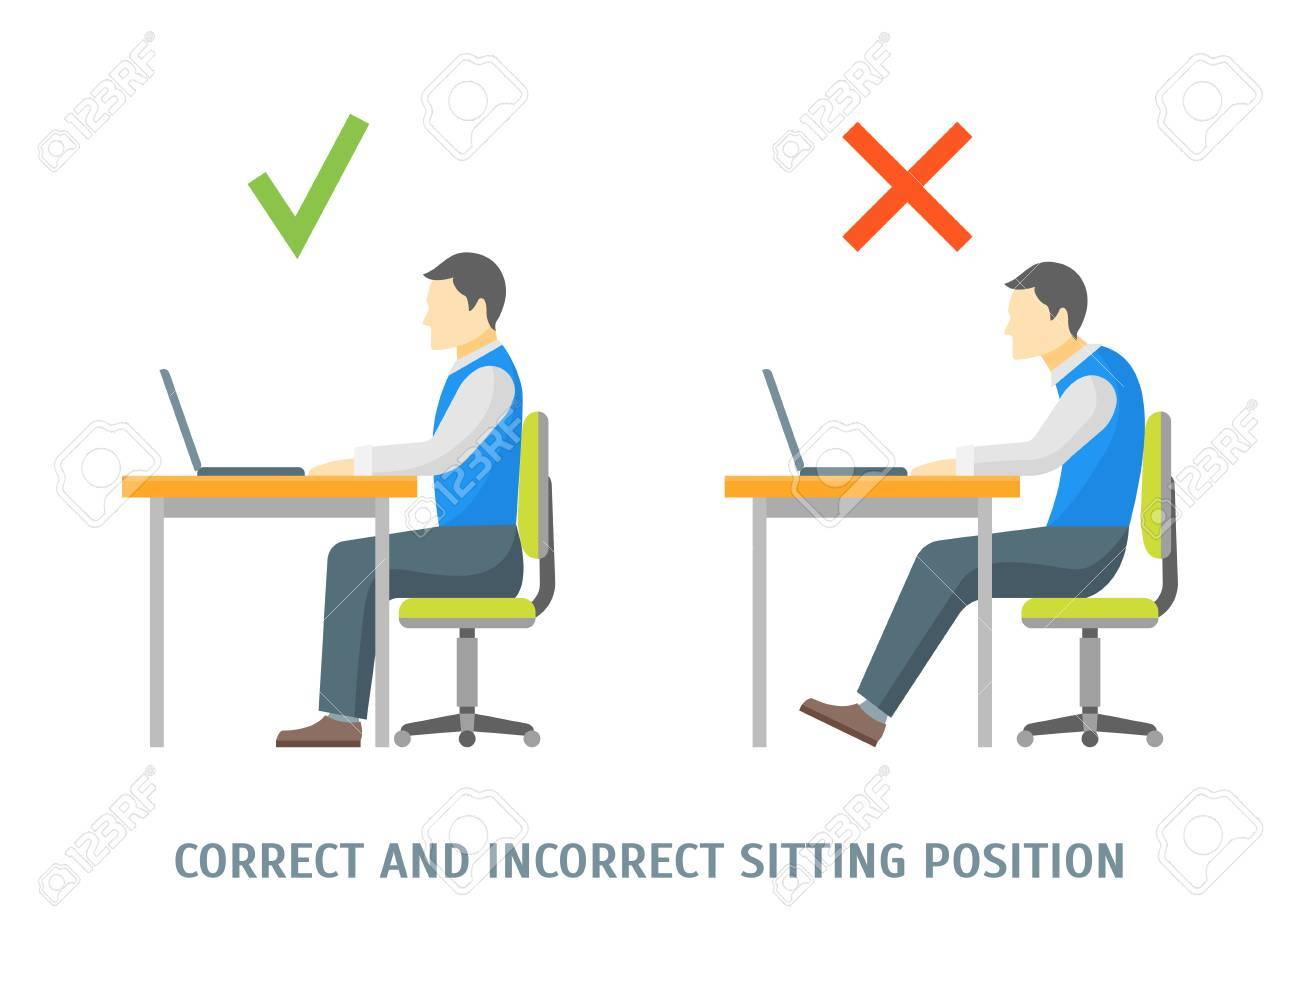 Incorrect and Correct Sitting Position Man Card Healthcare Concept. Flat Design Style. Vector illustration - 82833755